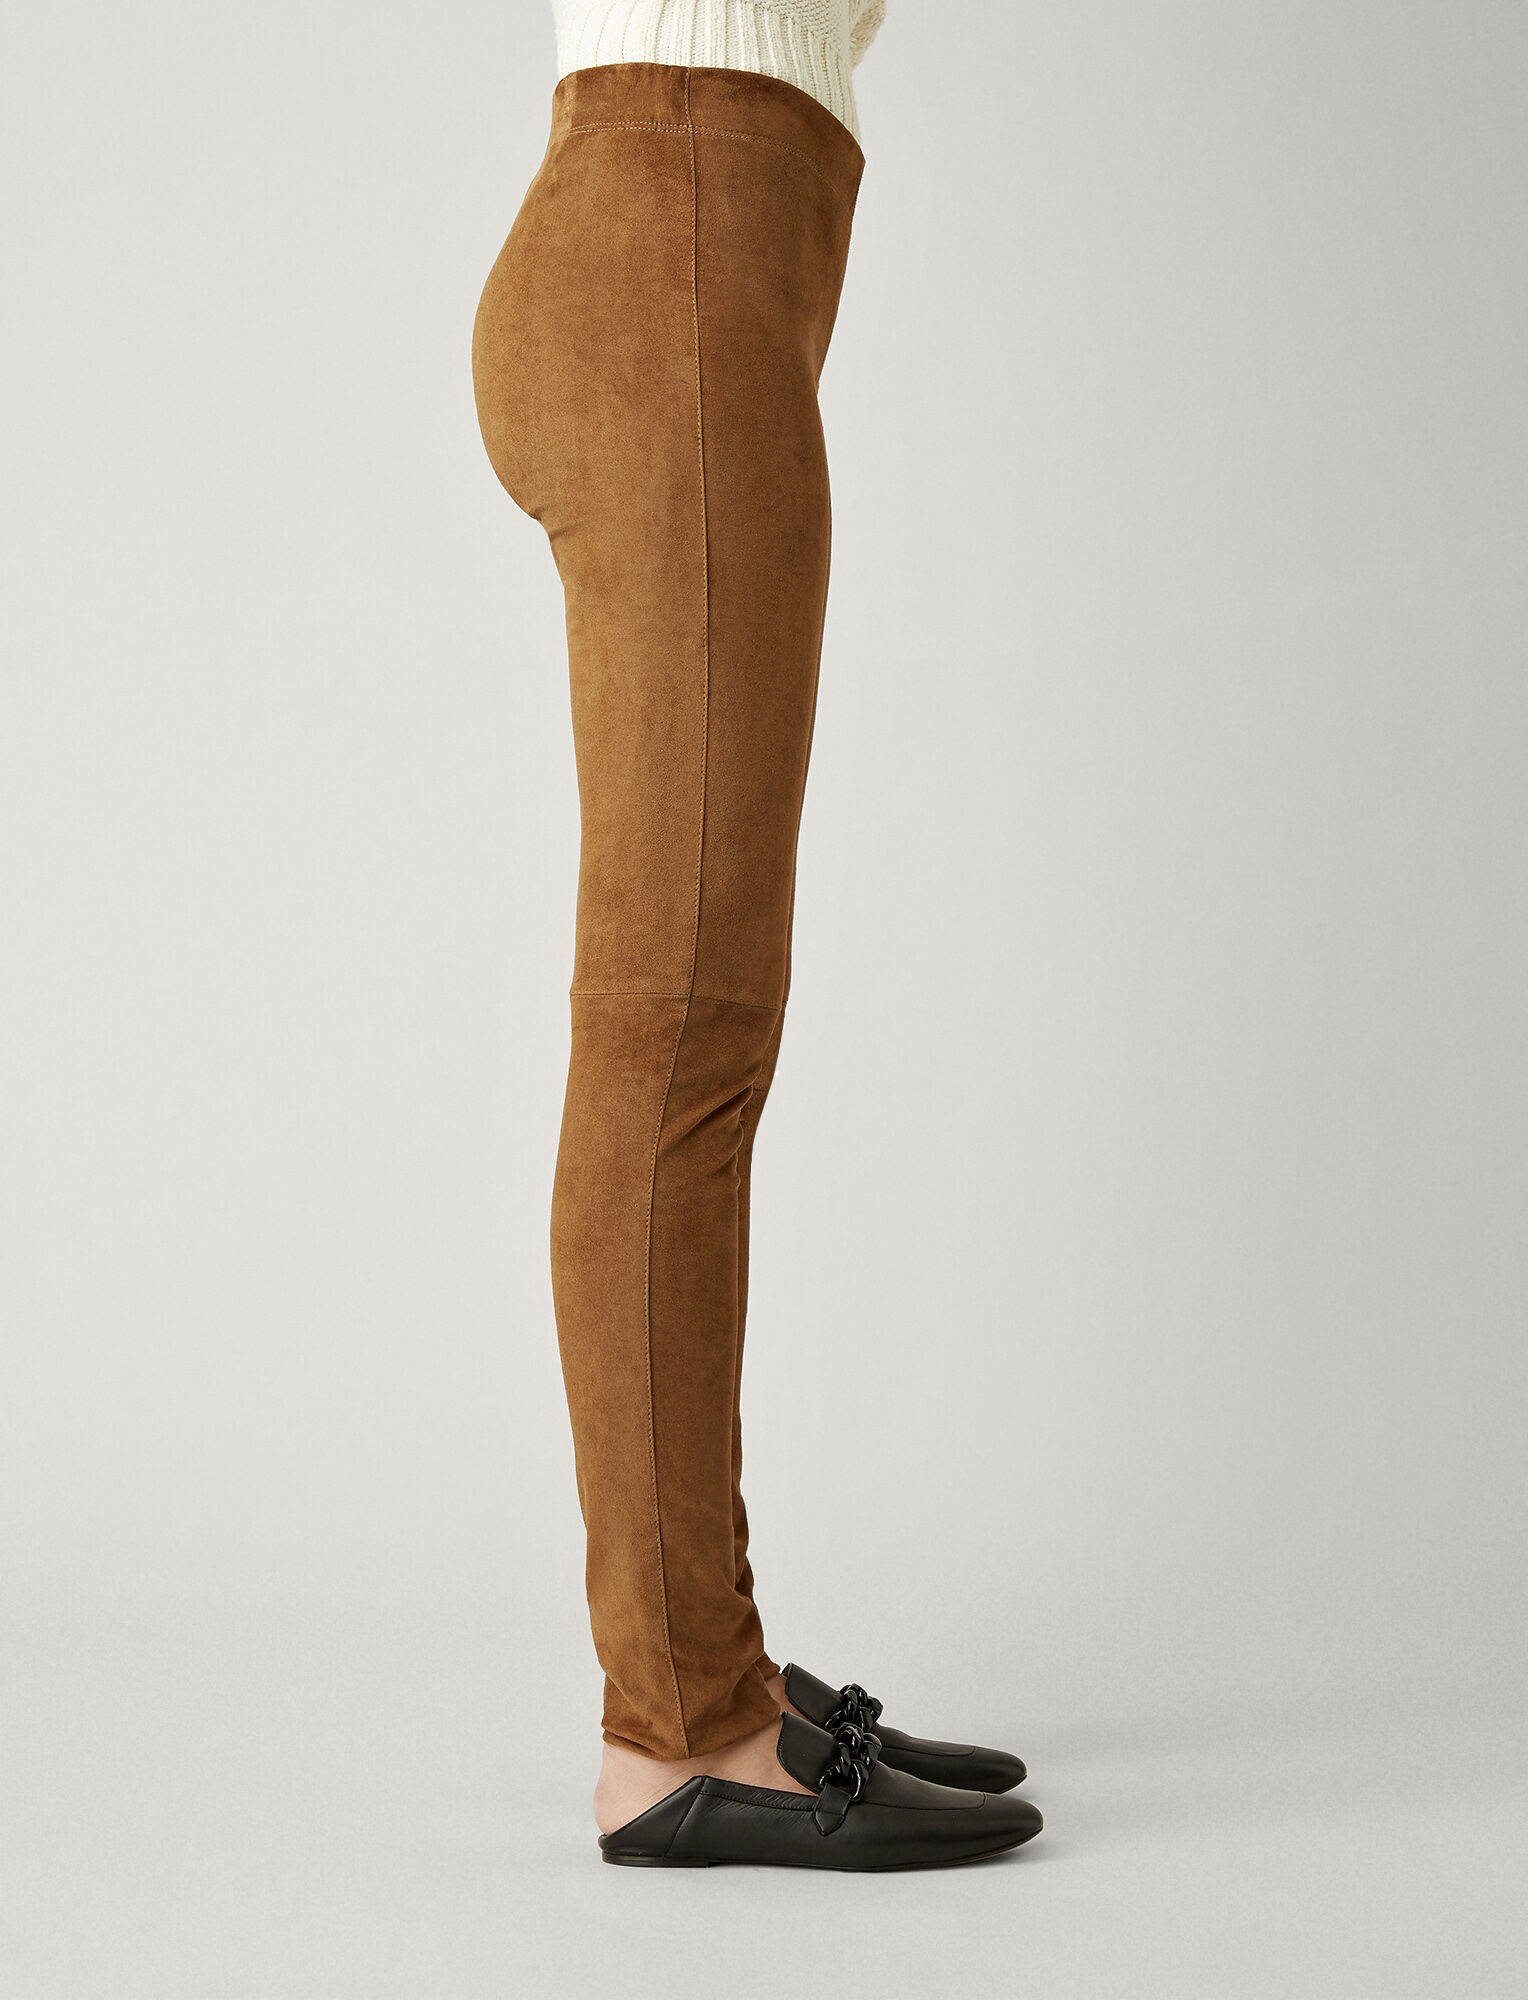 Joseph, Suede Stretch Legging, in SANDALWOOD